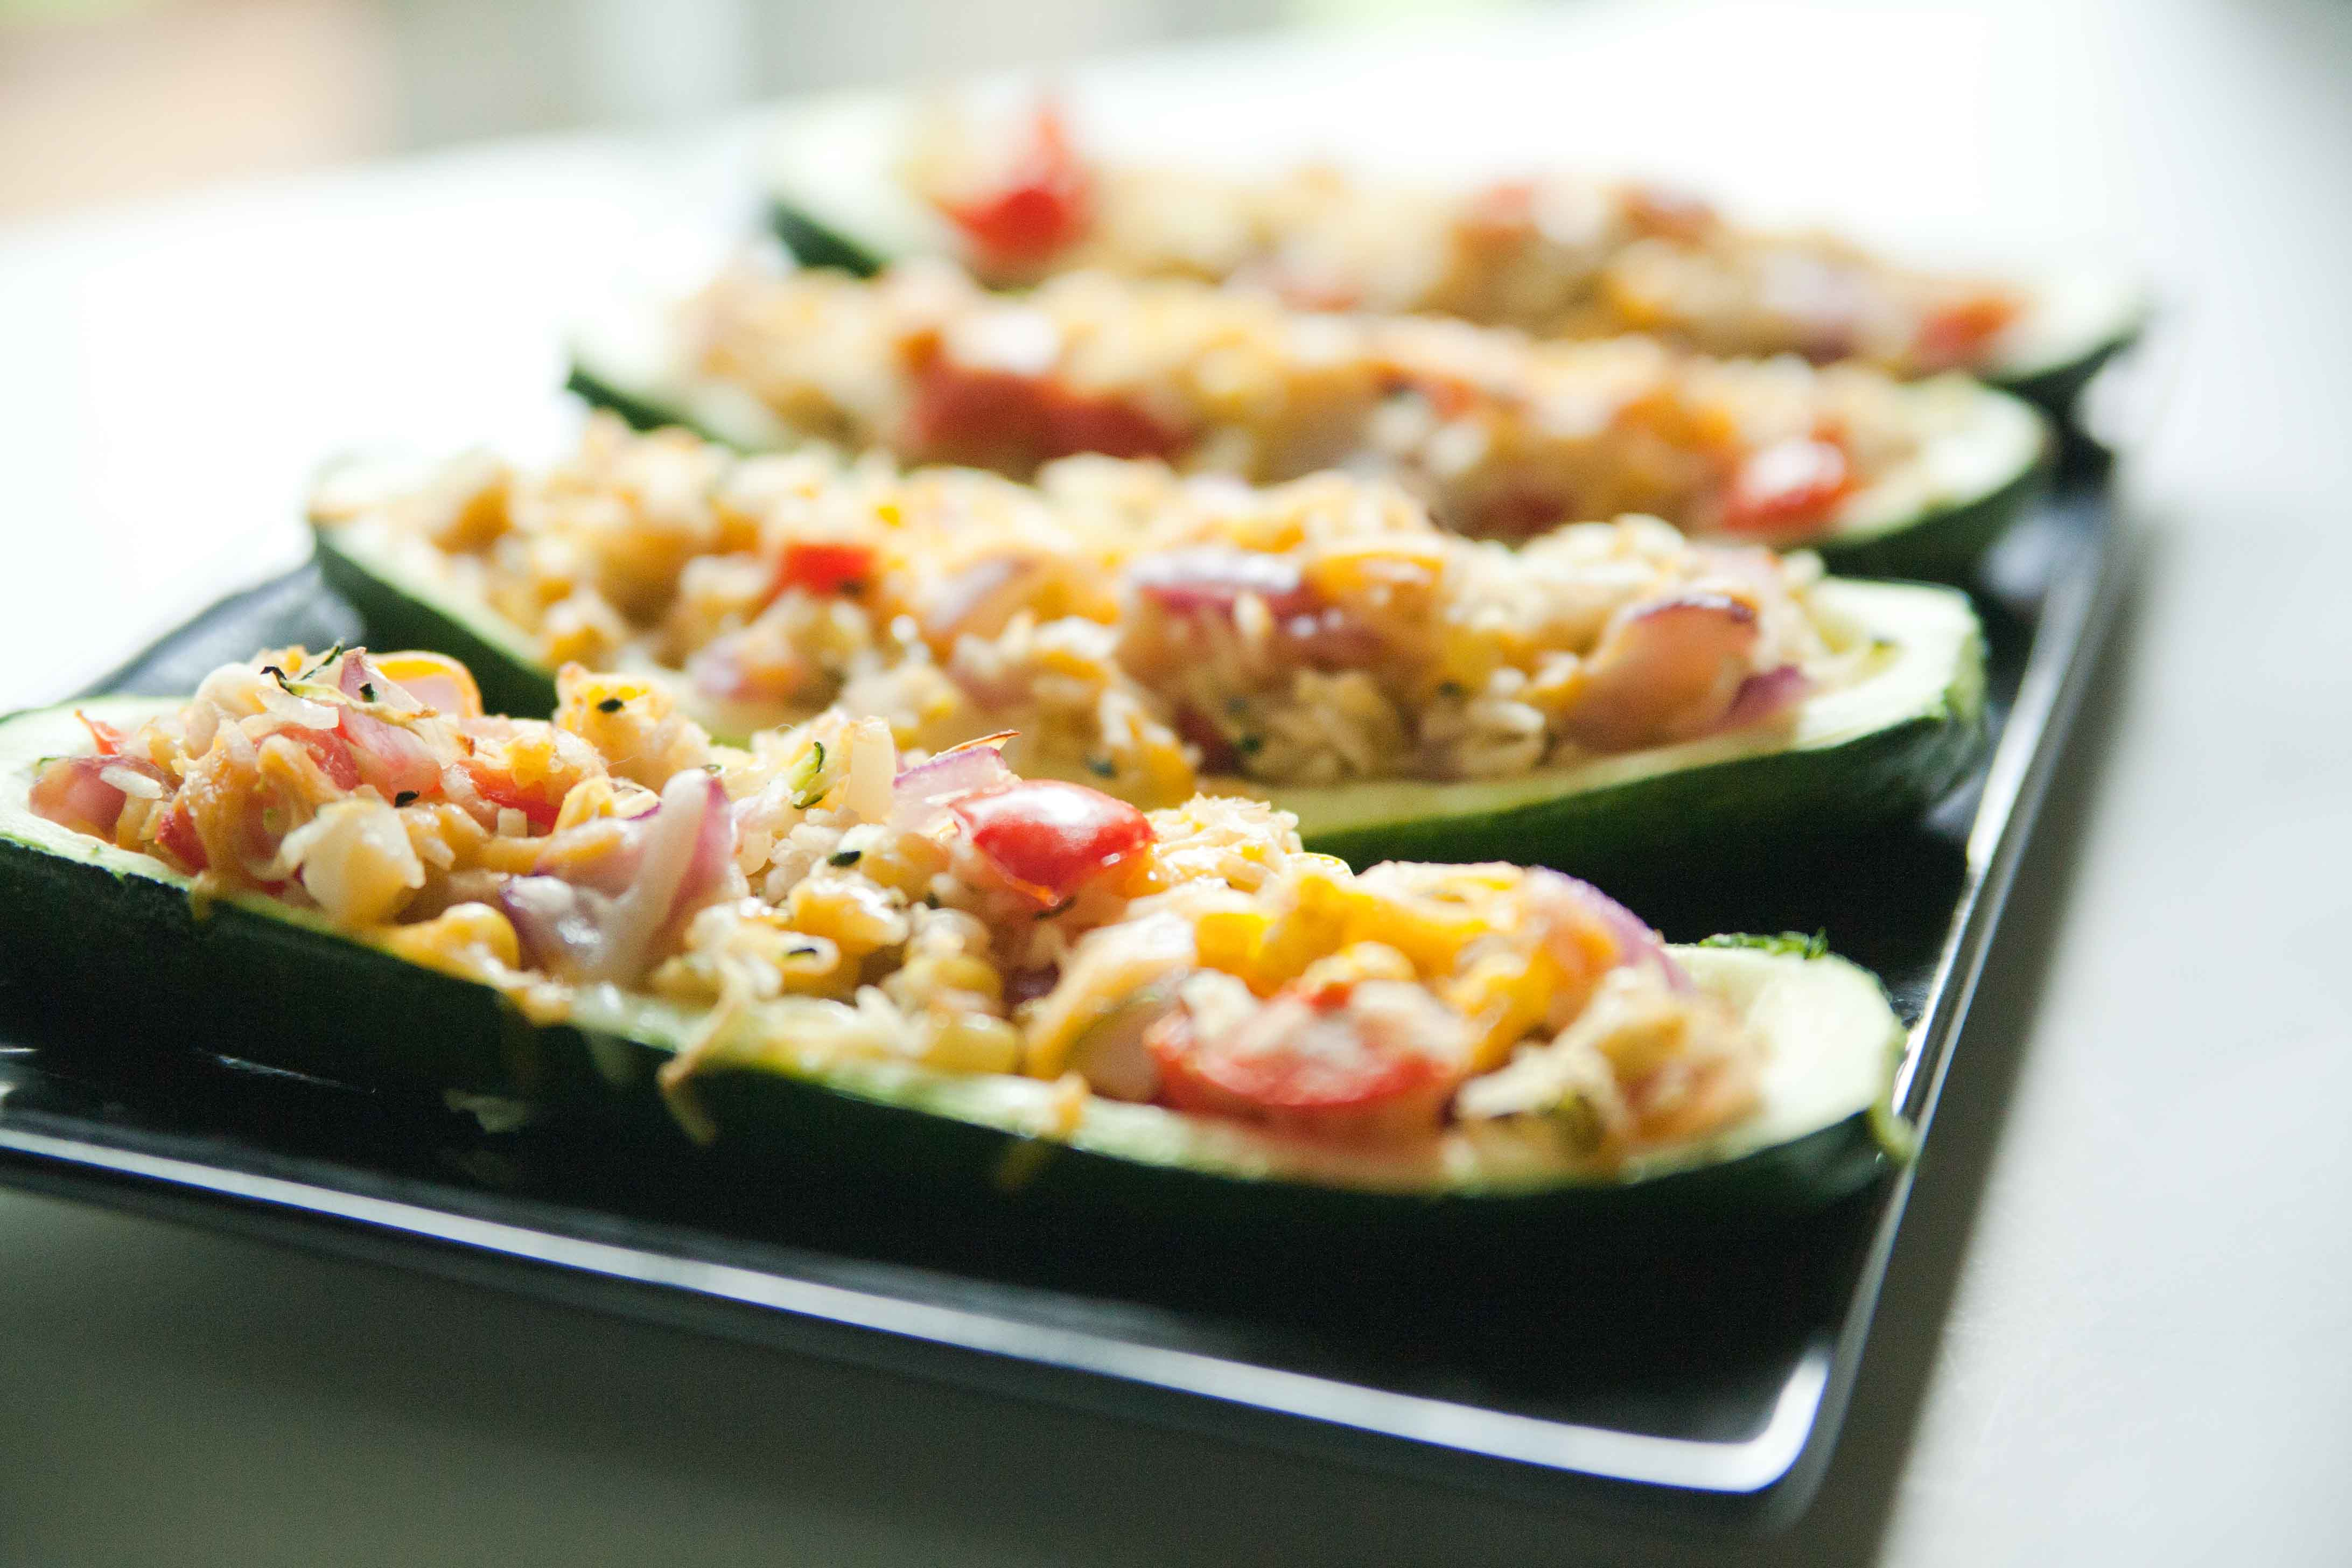 Published July 22, 2012 at 4368 × 2912 in Stuffed Zucchini Boats